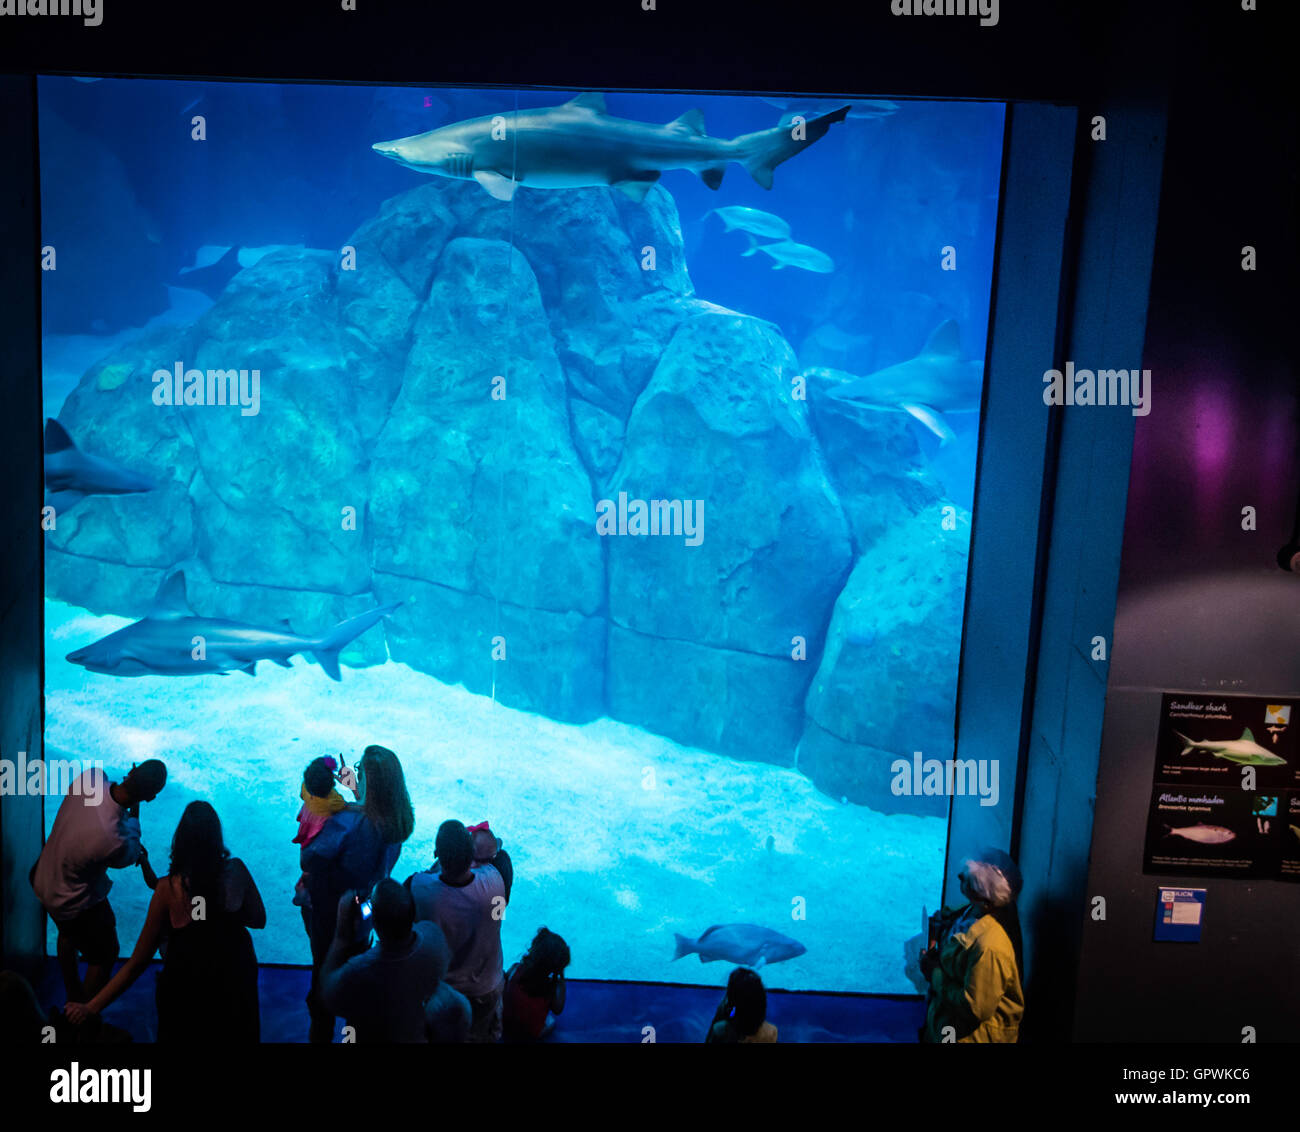 Public Aquarium Camden Nj Stock Photo Royalty Free